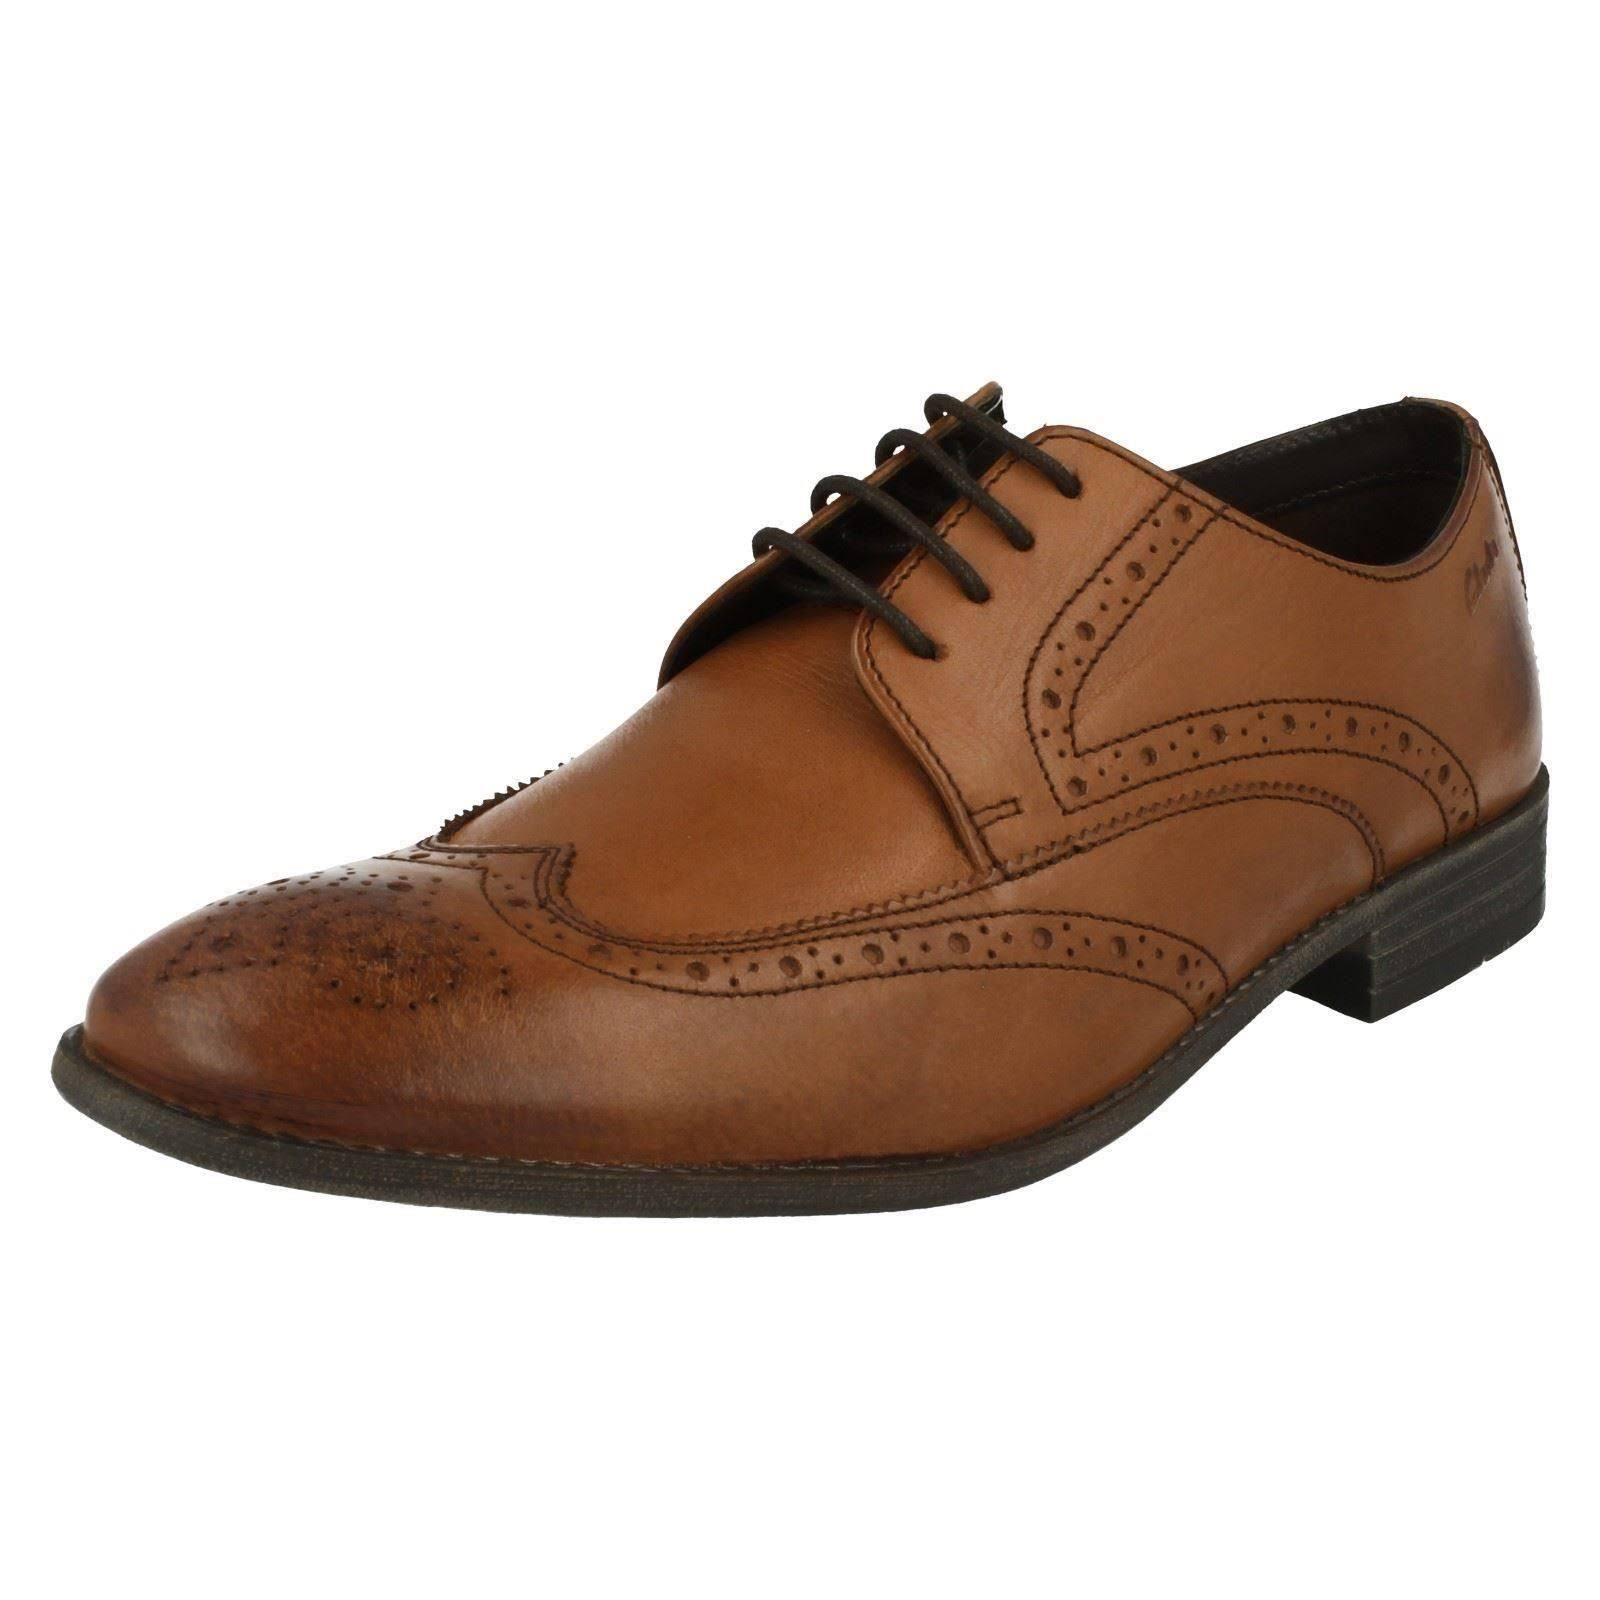 Tanmarrone Clarks Chart Mens Limit Smart Brogues MUVpzS